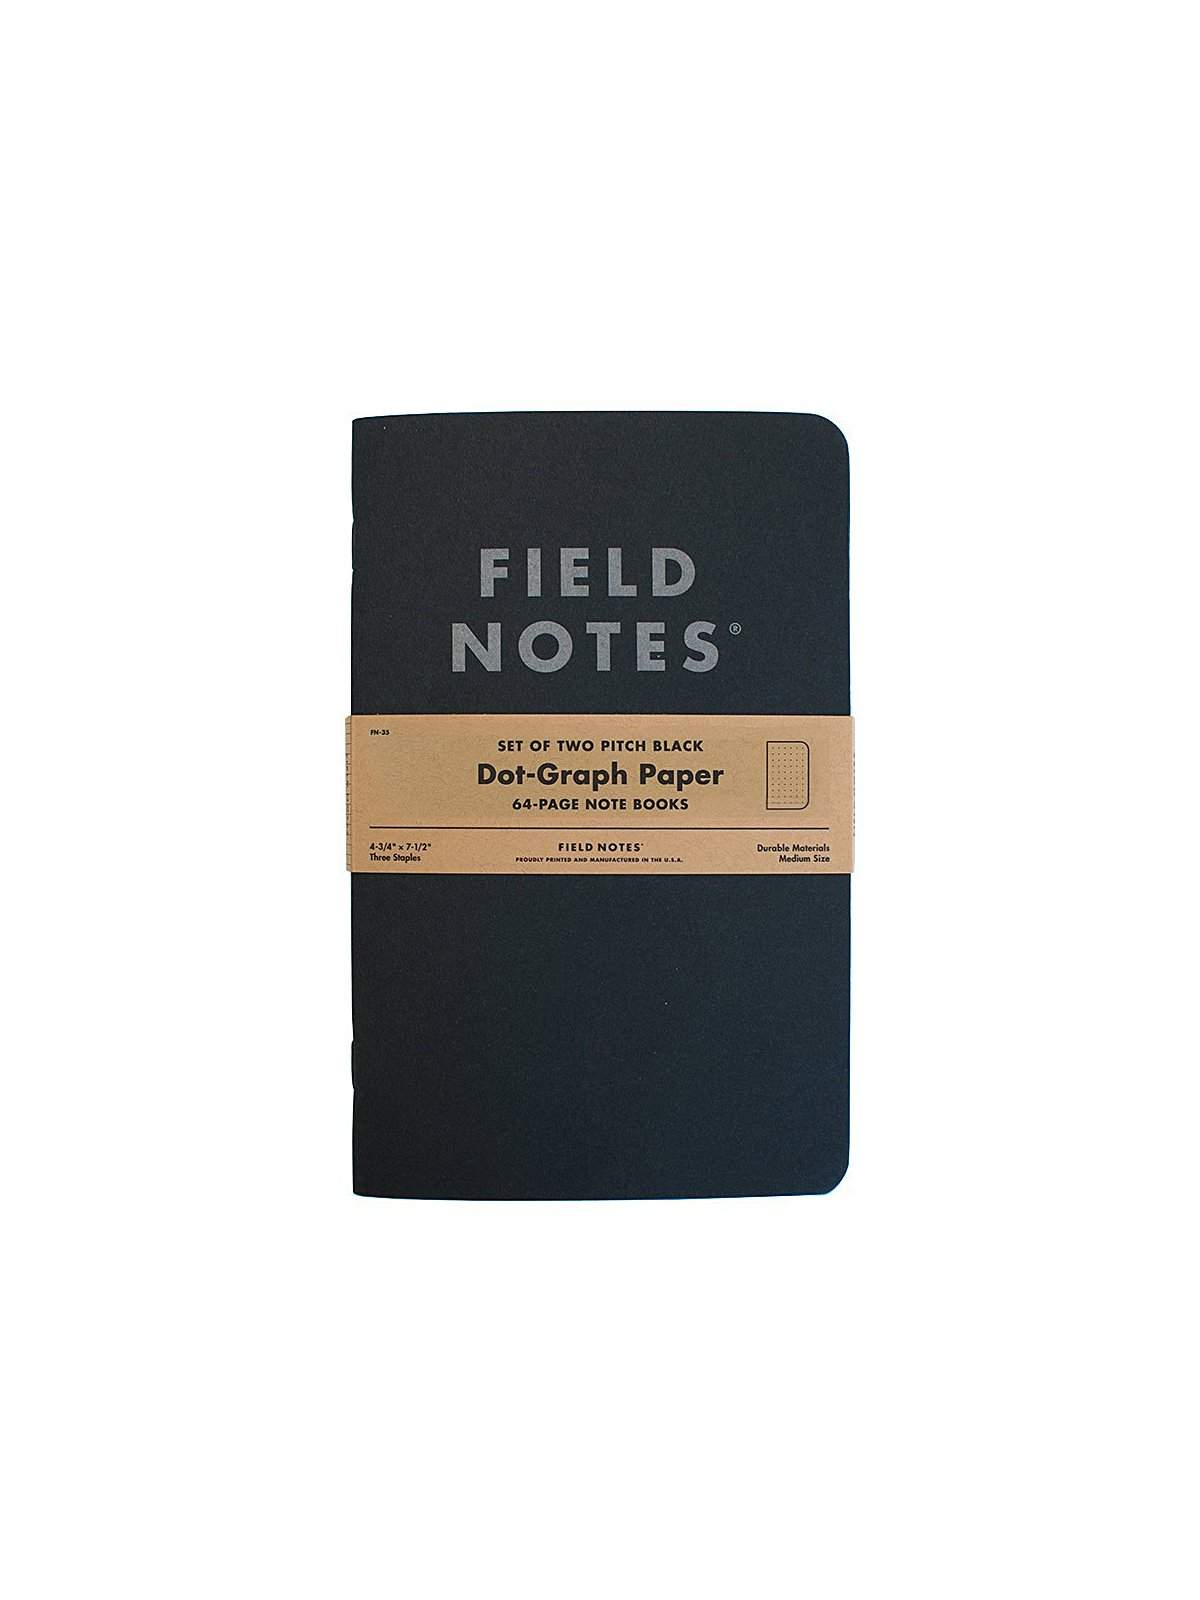 Field Notes Pitch Black Note Book 2 Pack Dot Graph Paper - MORE by Morello Indonesia